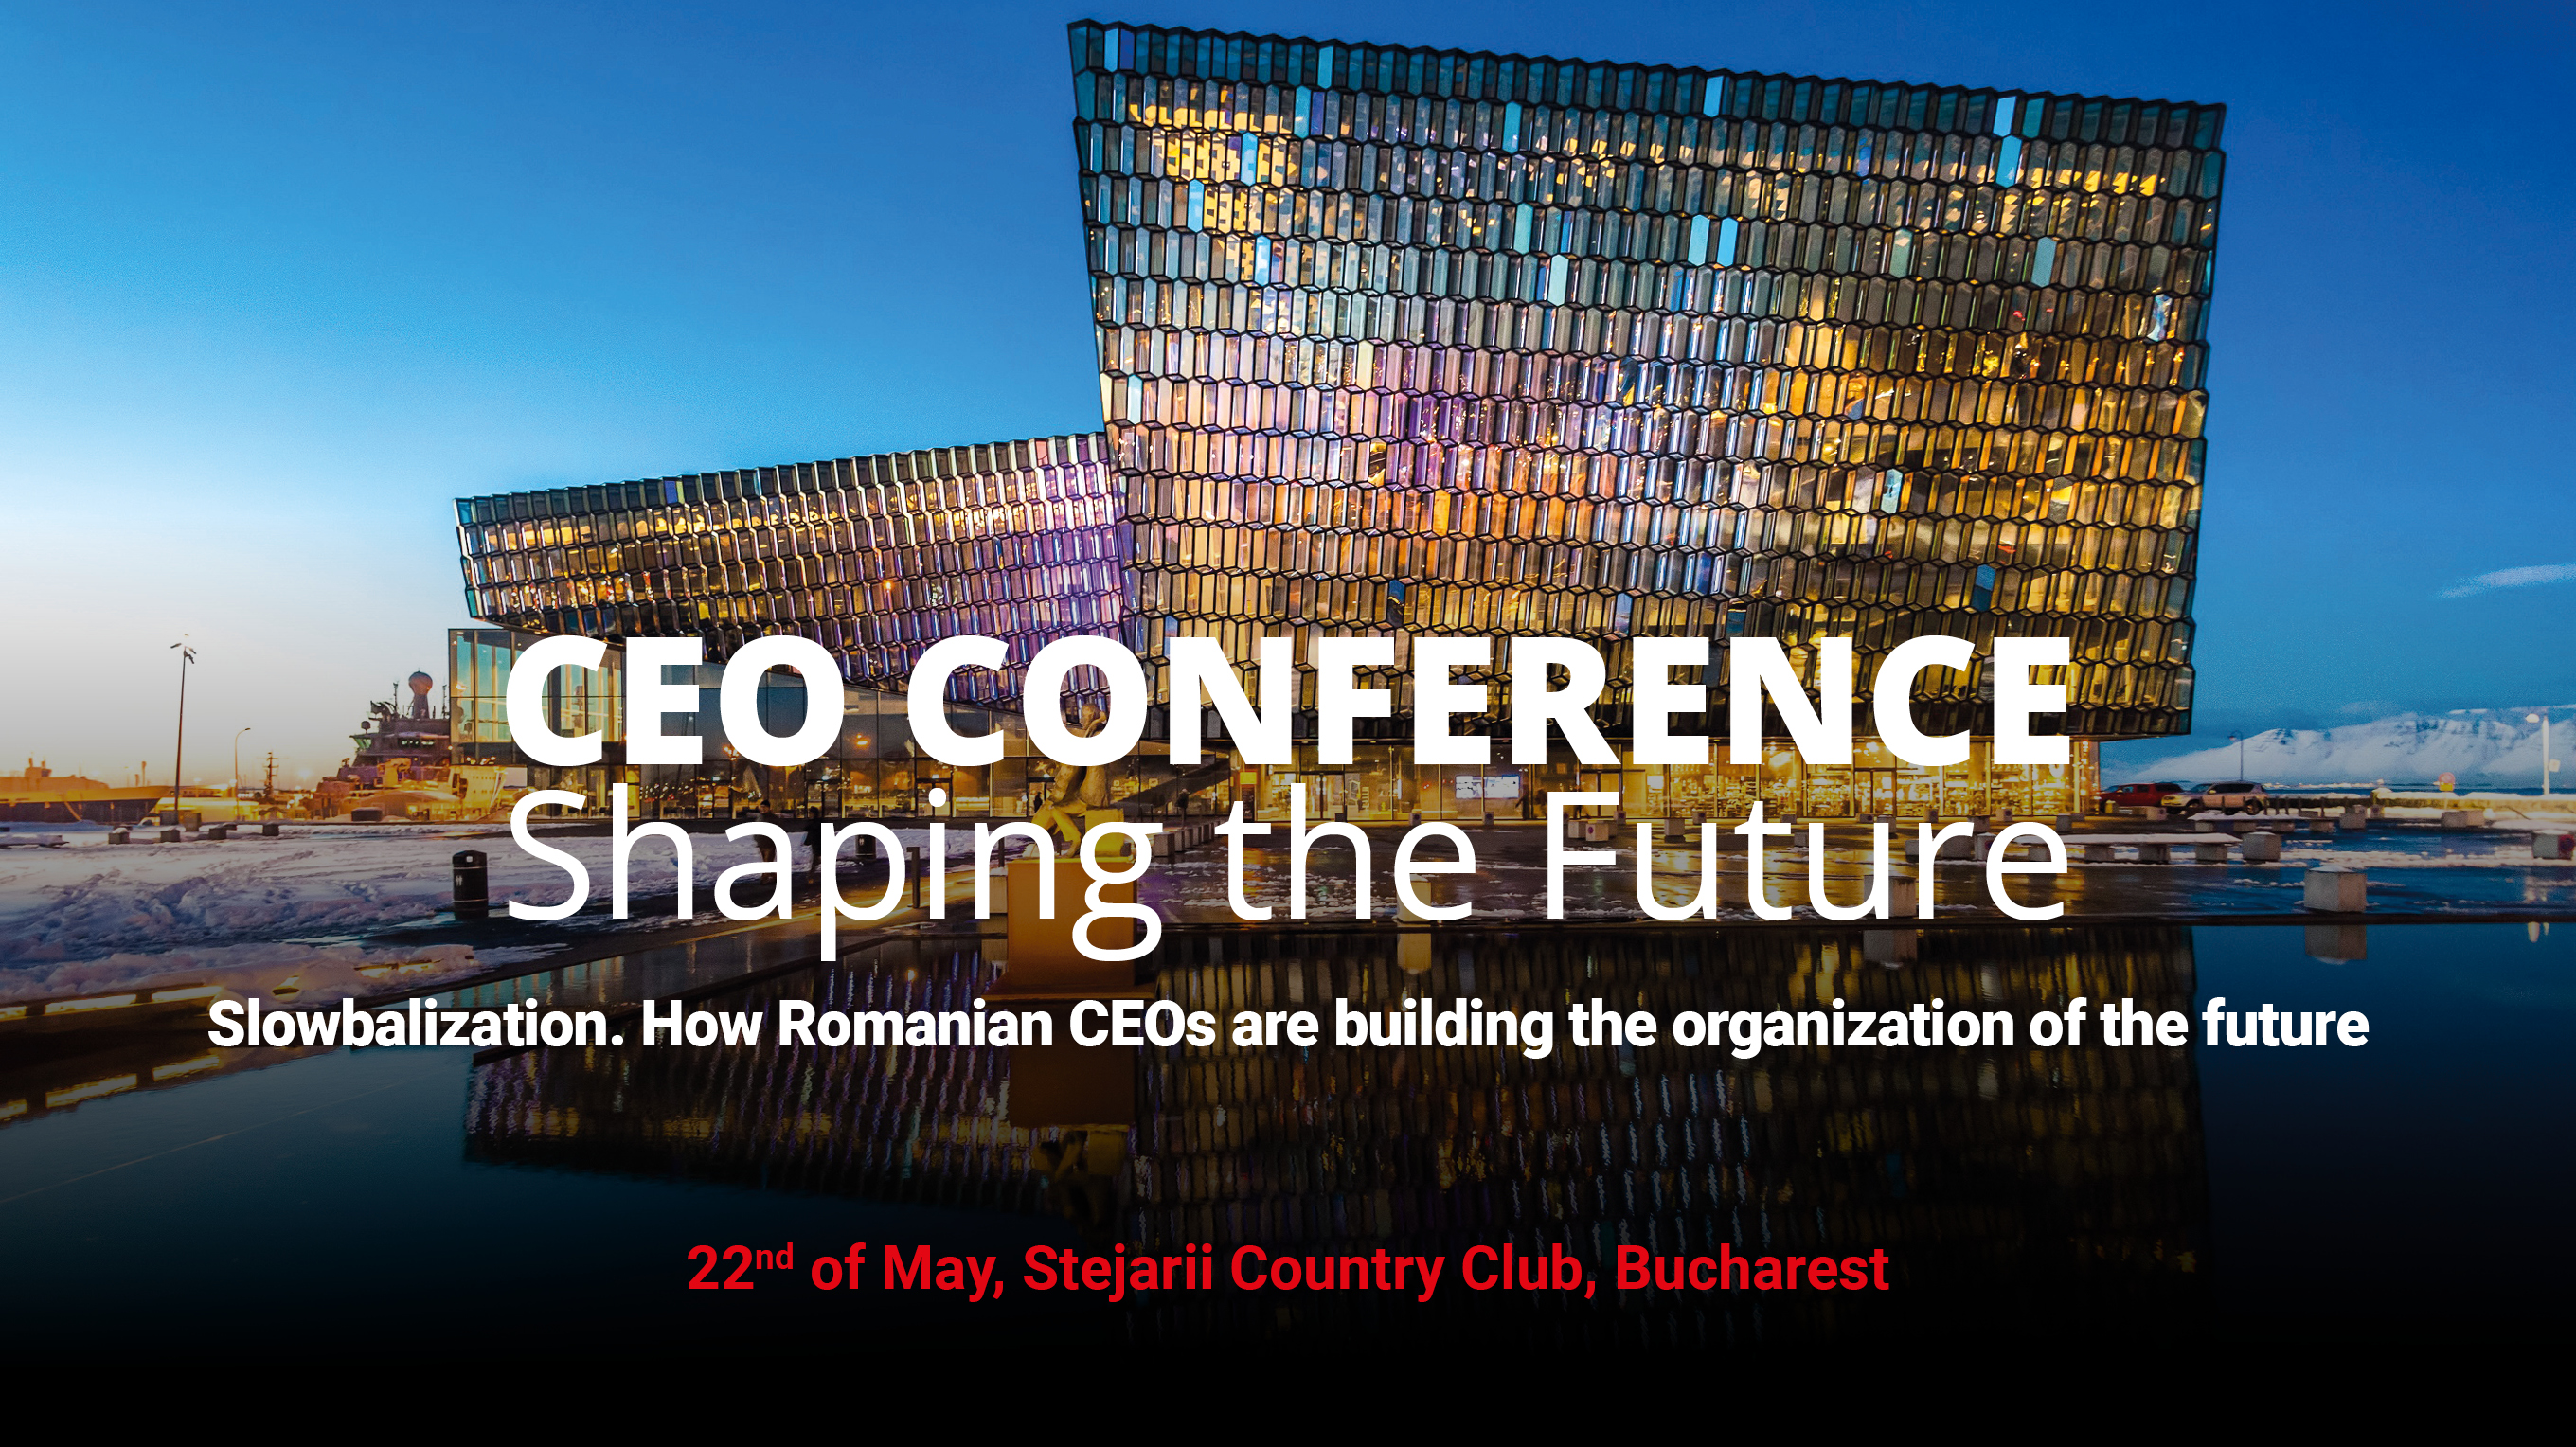 CEO Conference – Shaping the Future Slowbalization – How to redesign the organization of the future